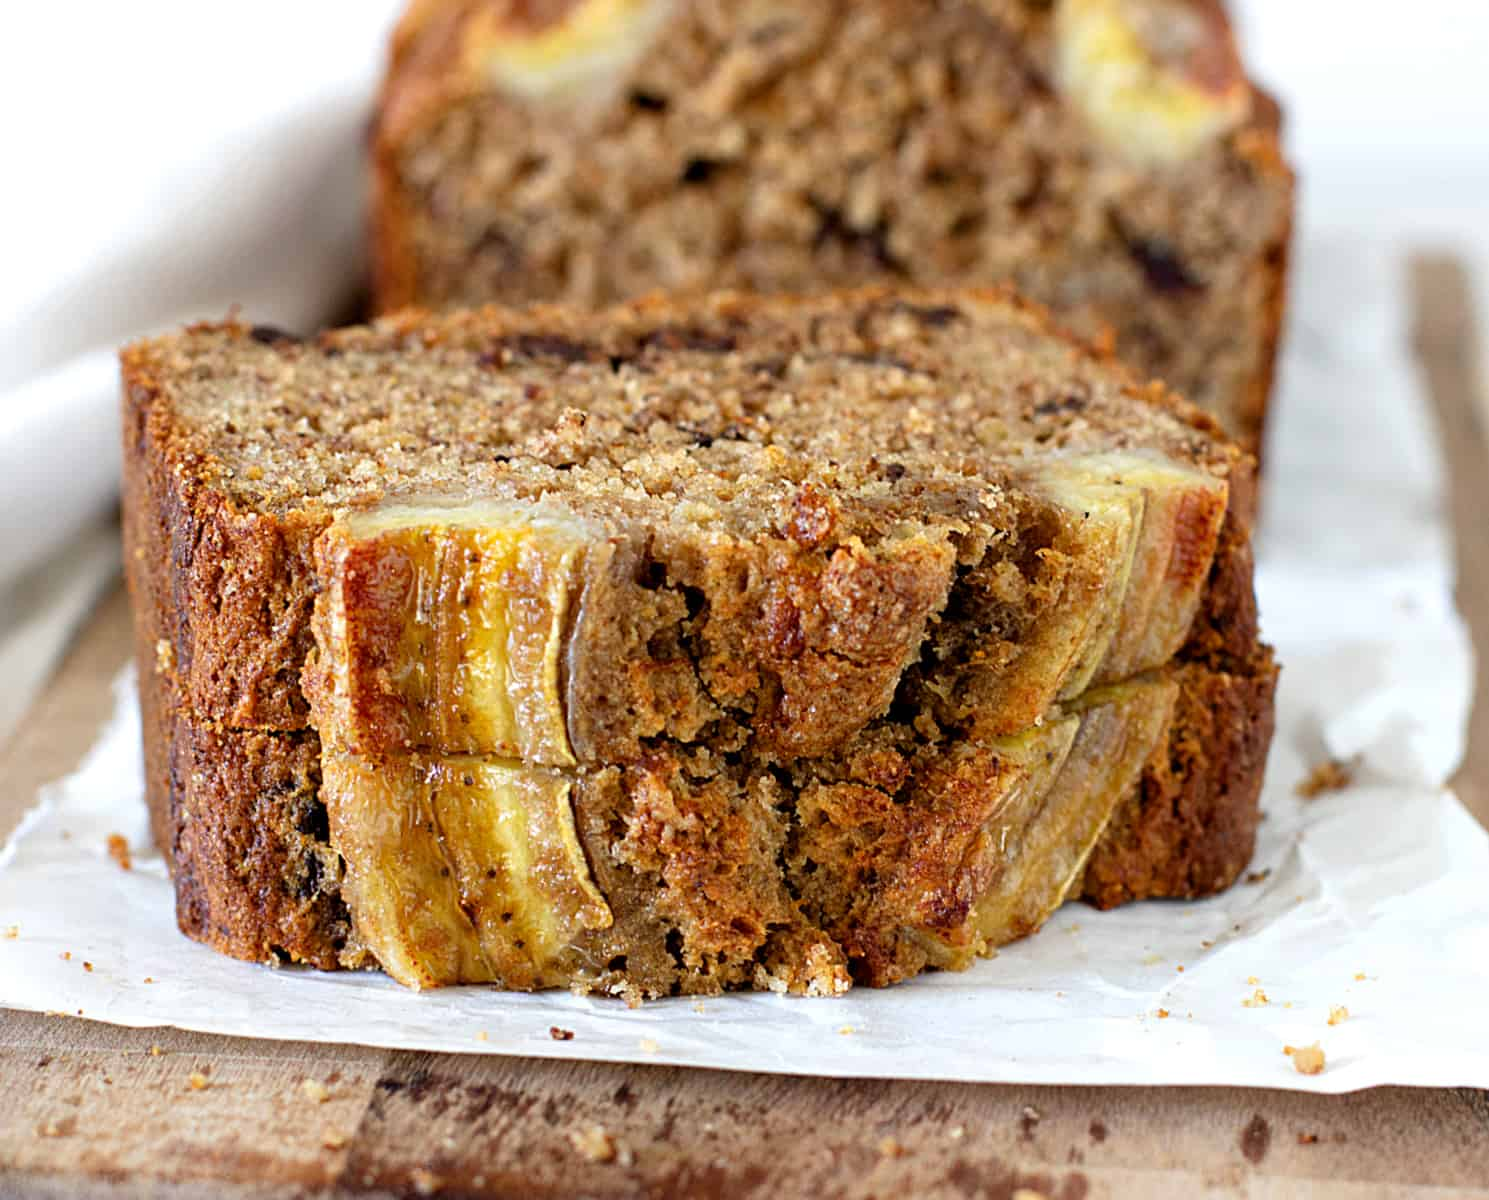 Two stacked slices of Healthier banana bread on white paper